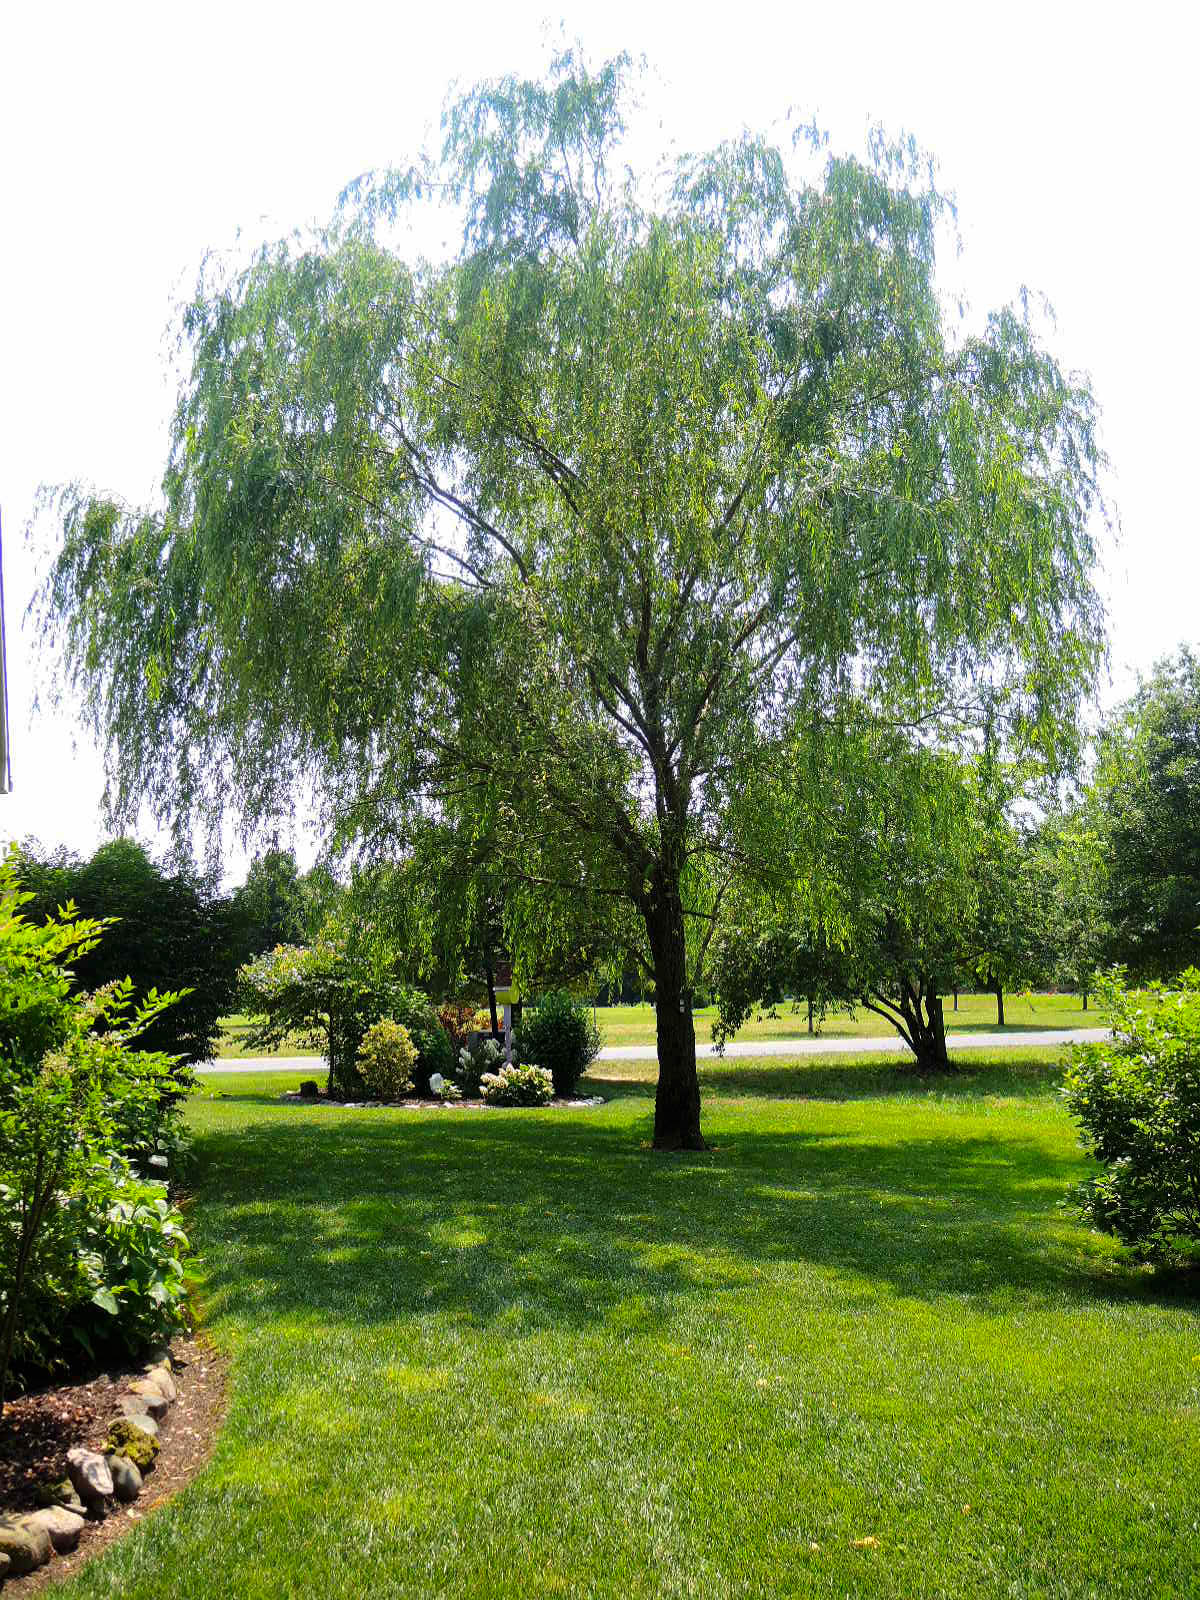 DSCN9999_-_willow_tree[1].jpg